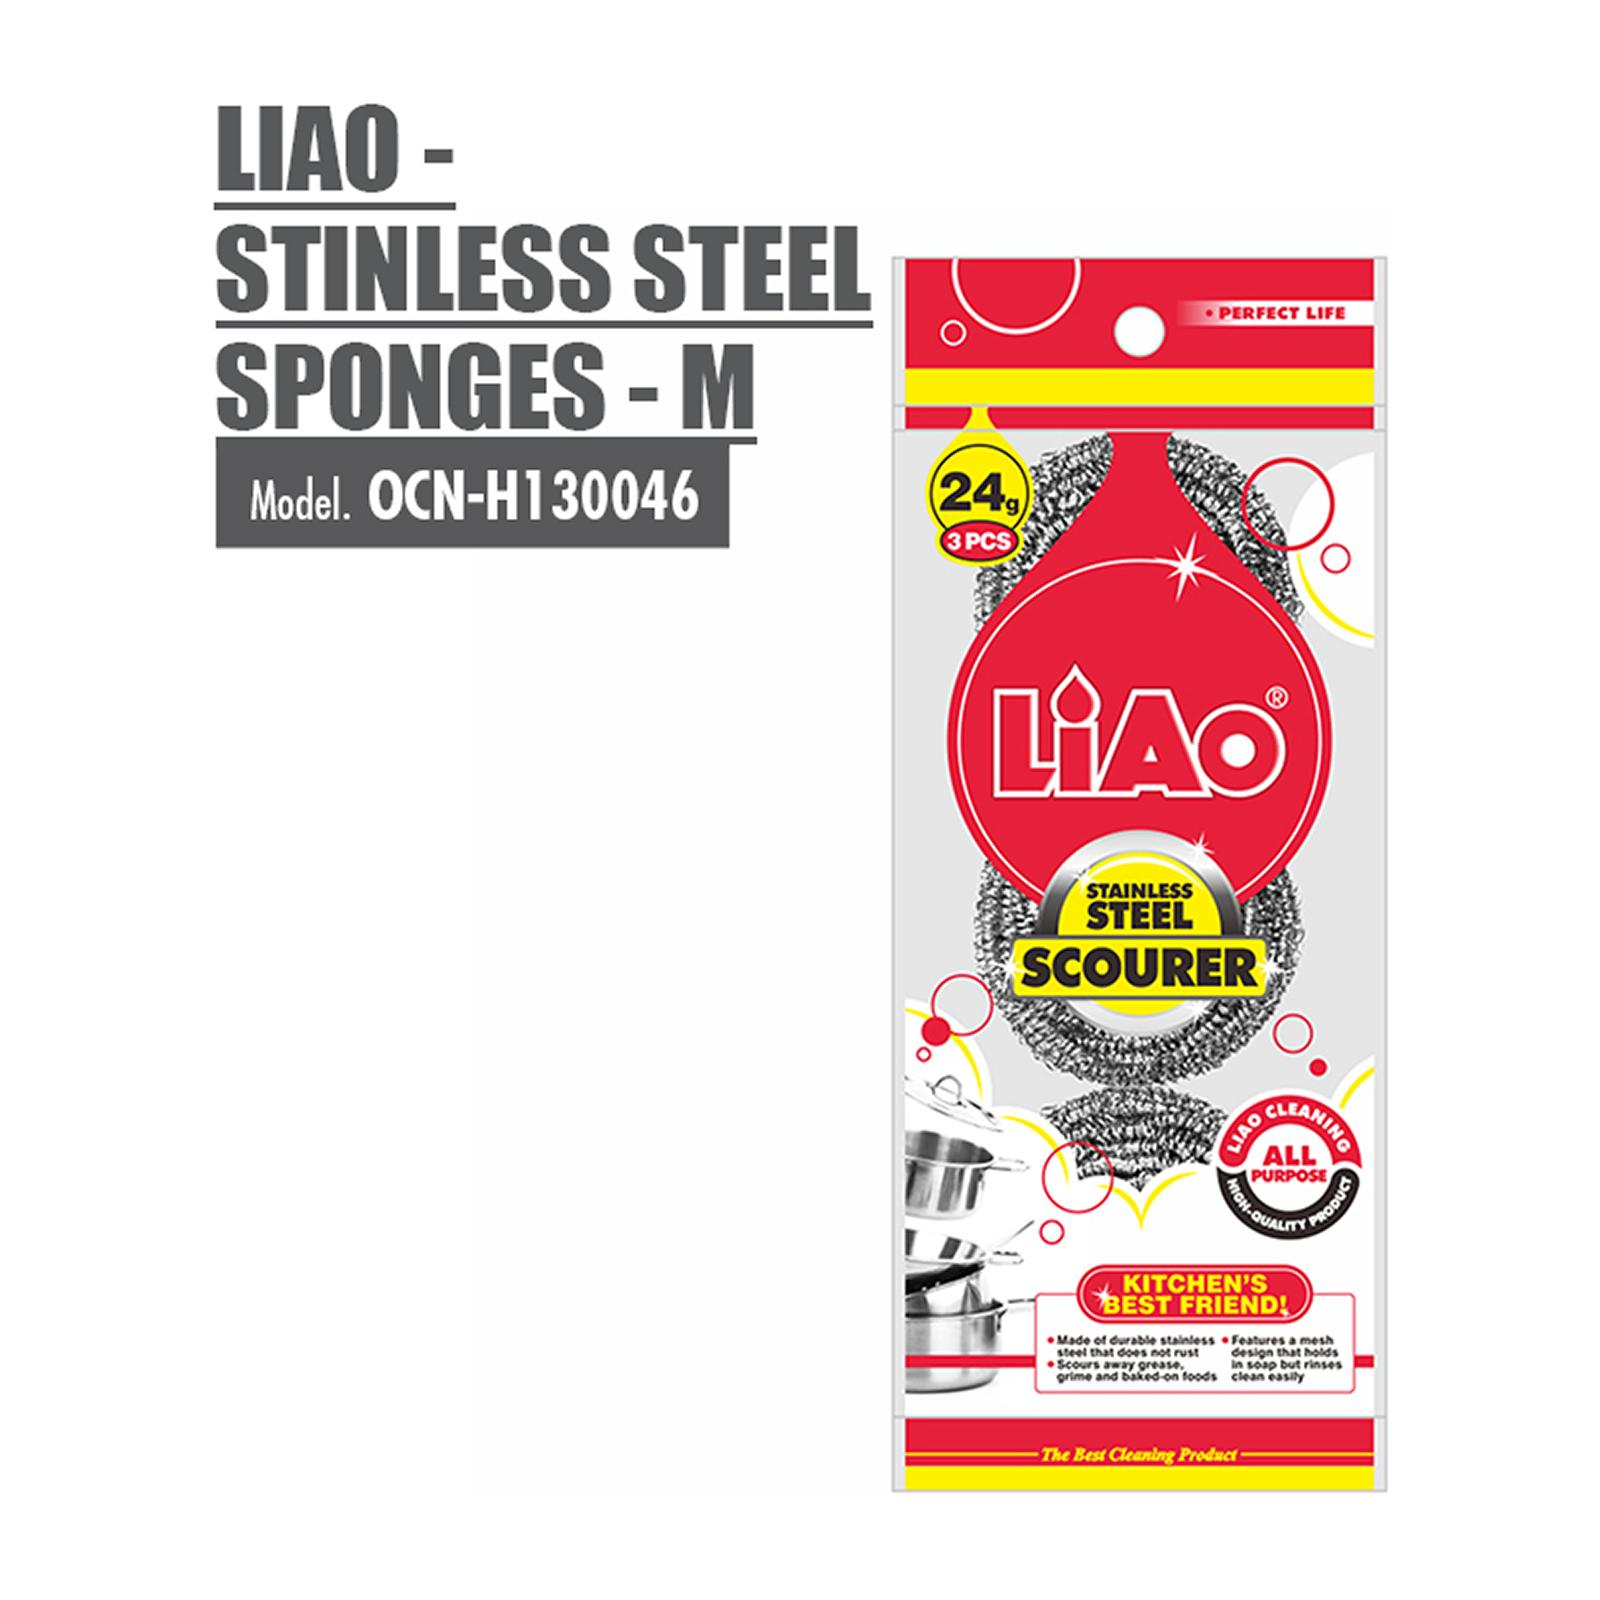 LIAO Stainless Steel Sponges - M